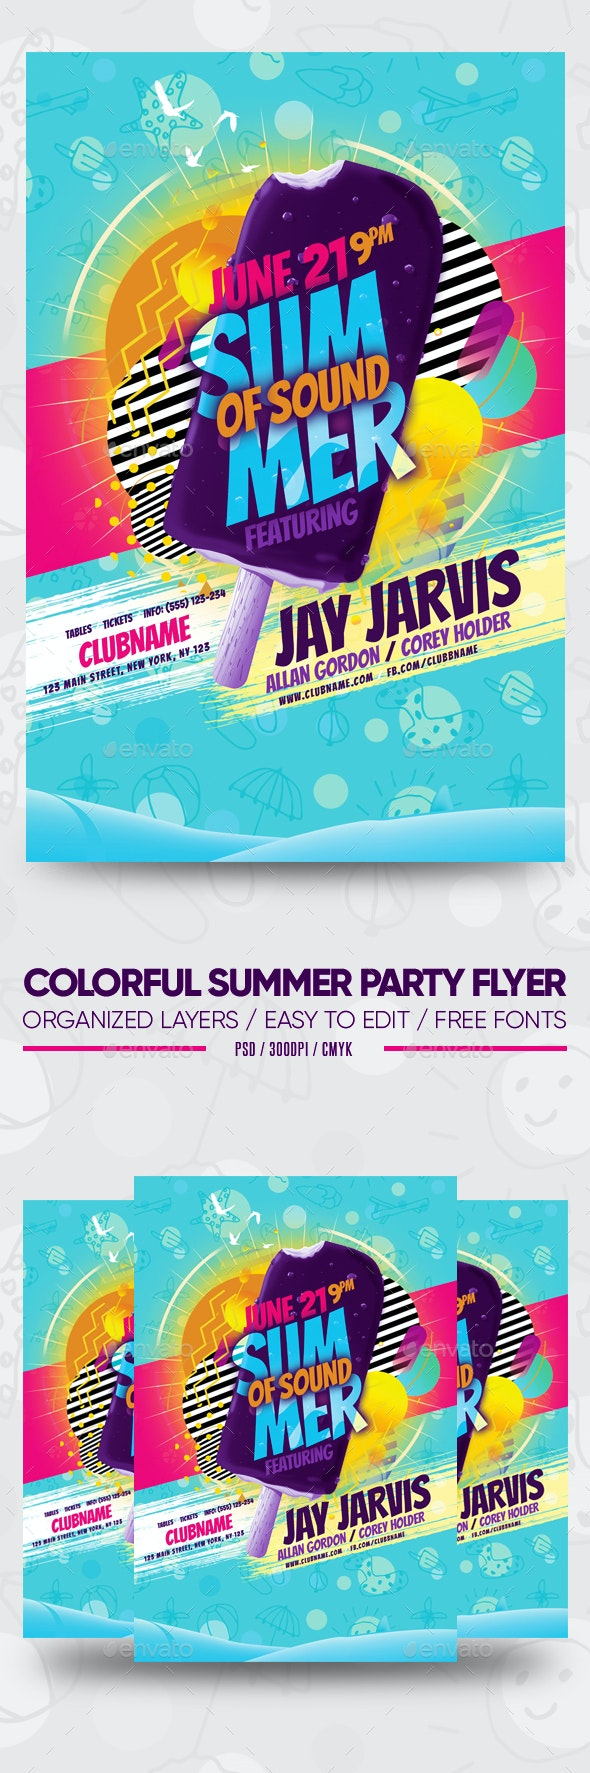 6 Best Flyer Templates  for July 2019